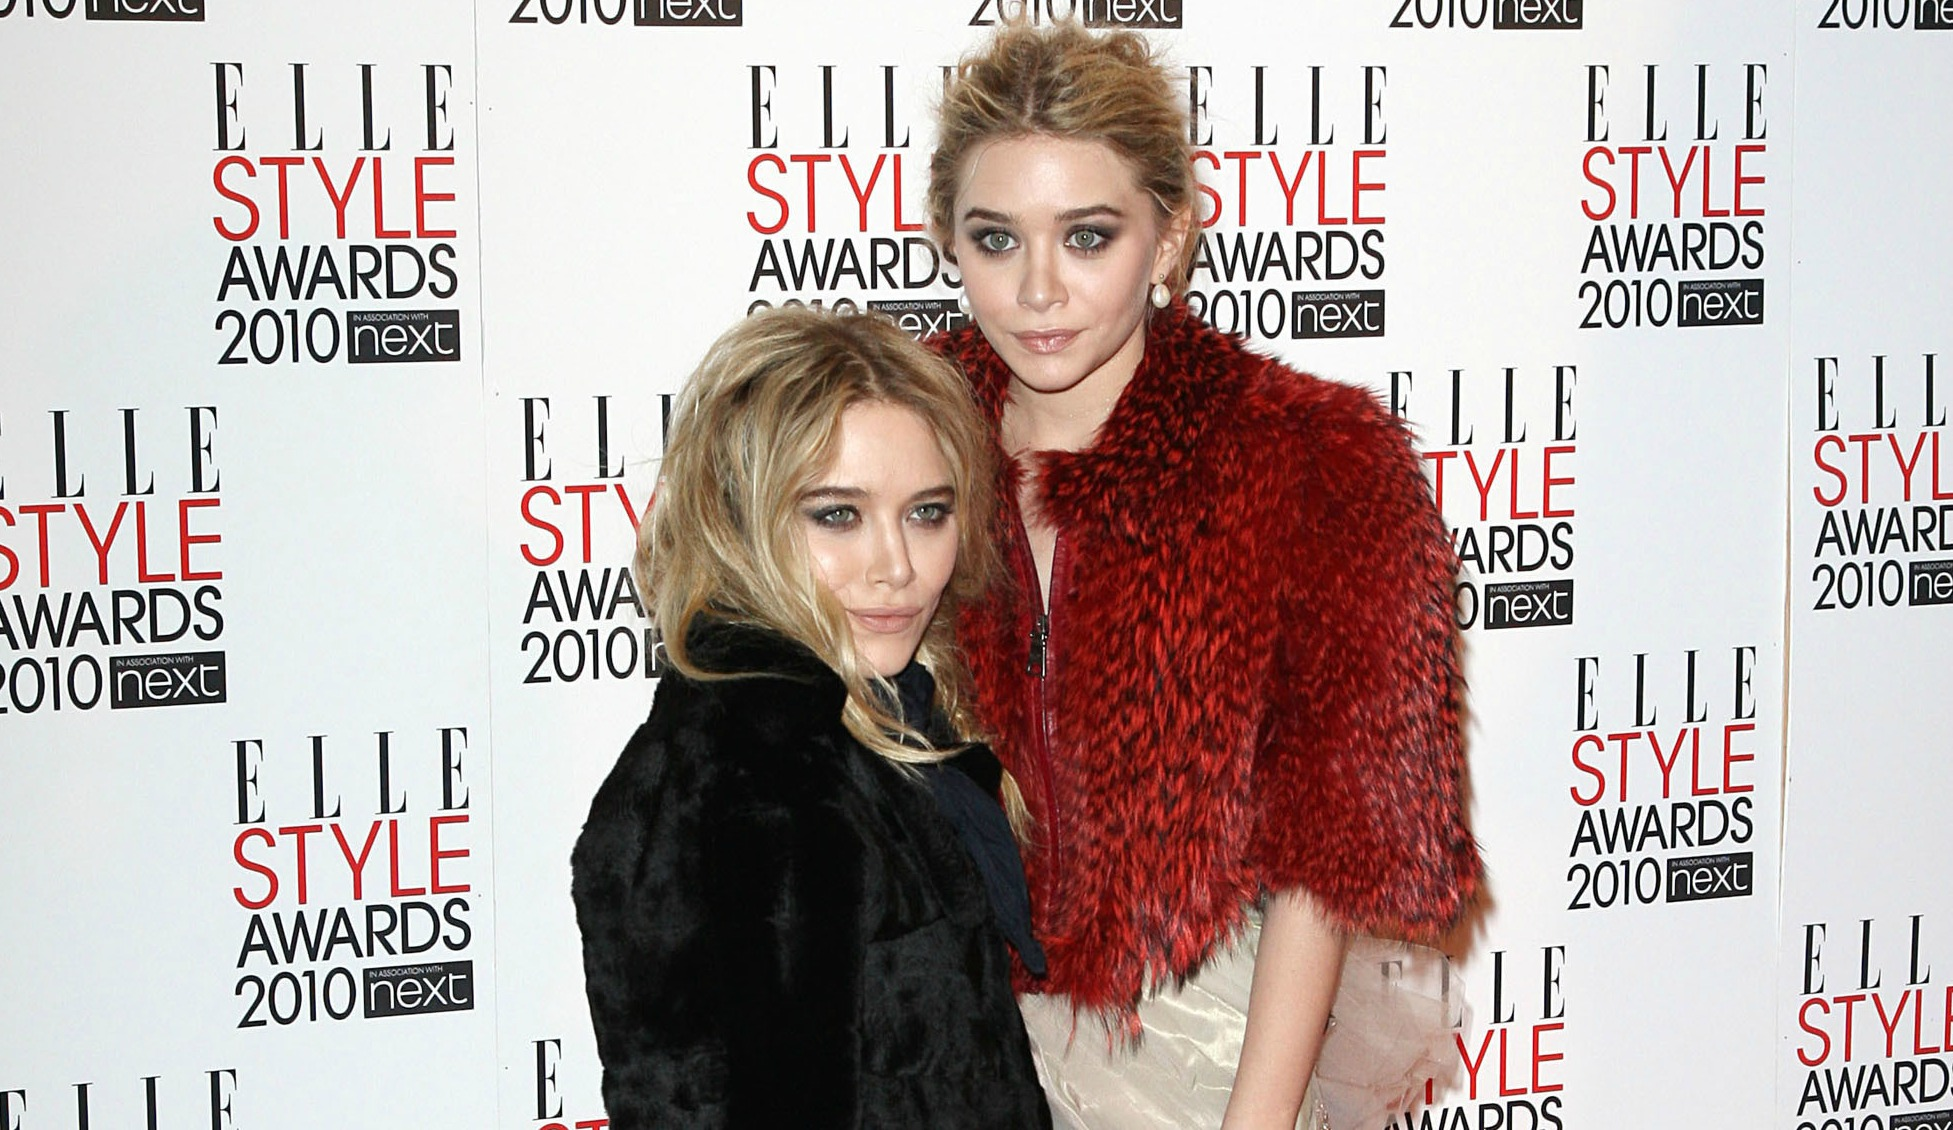 Who is the favorite out of Mary Kate and Ashley Olsen